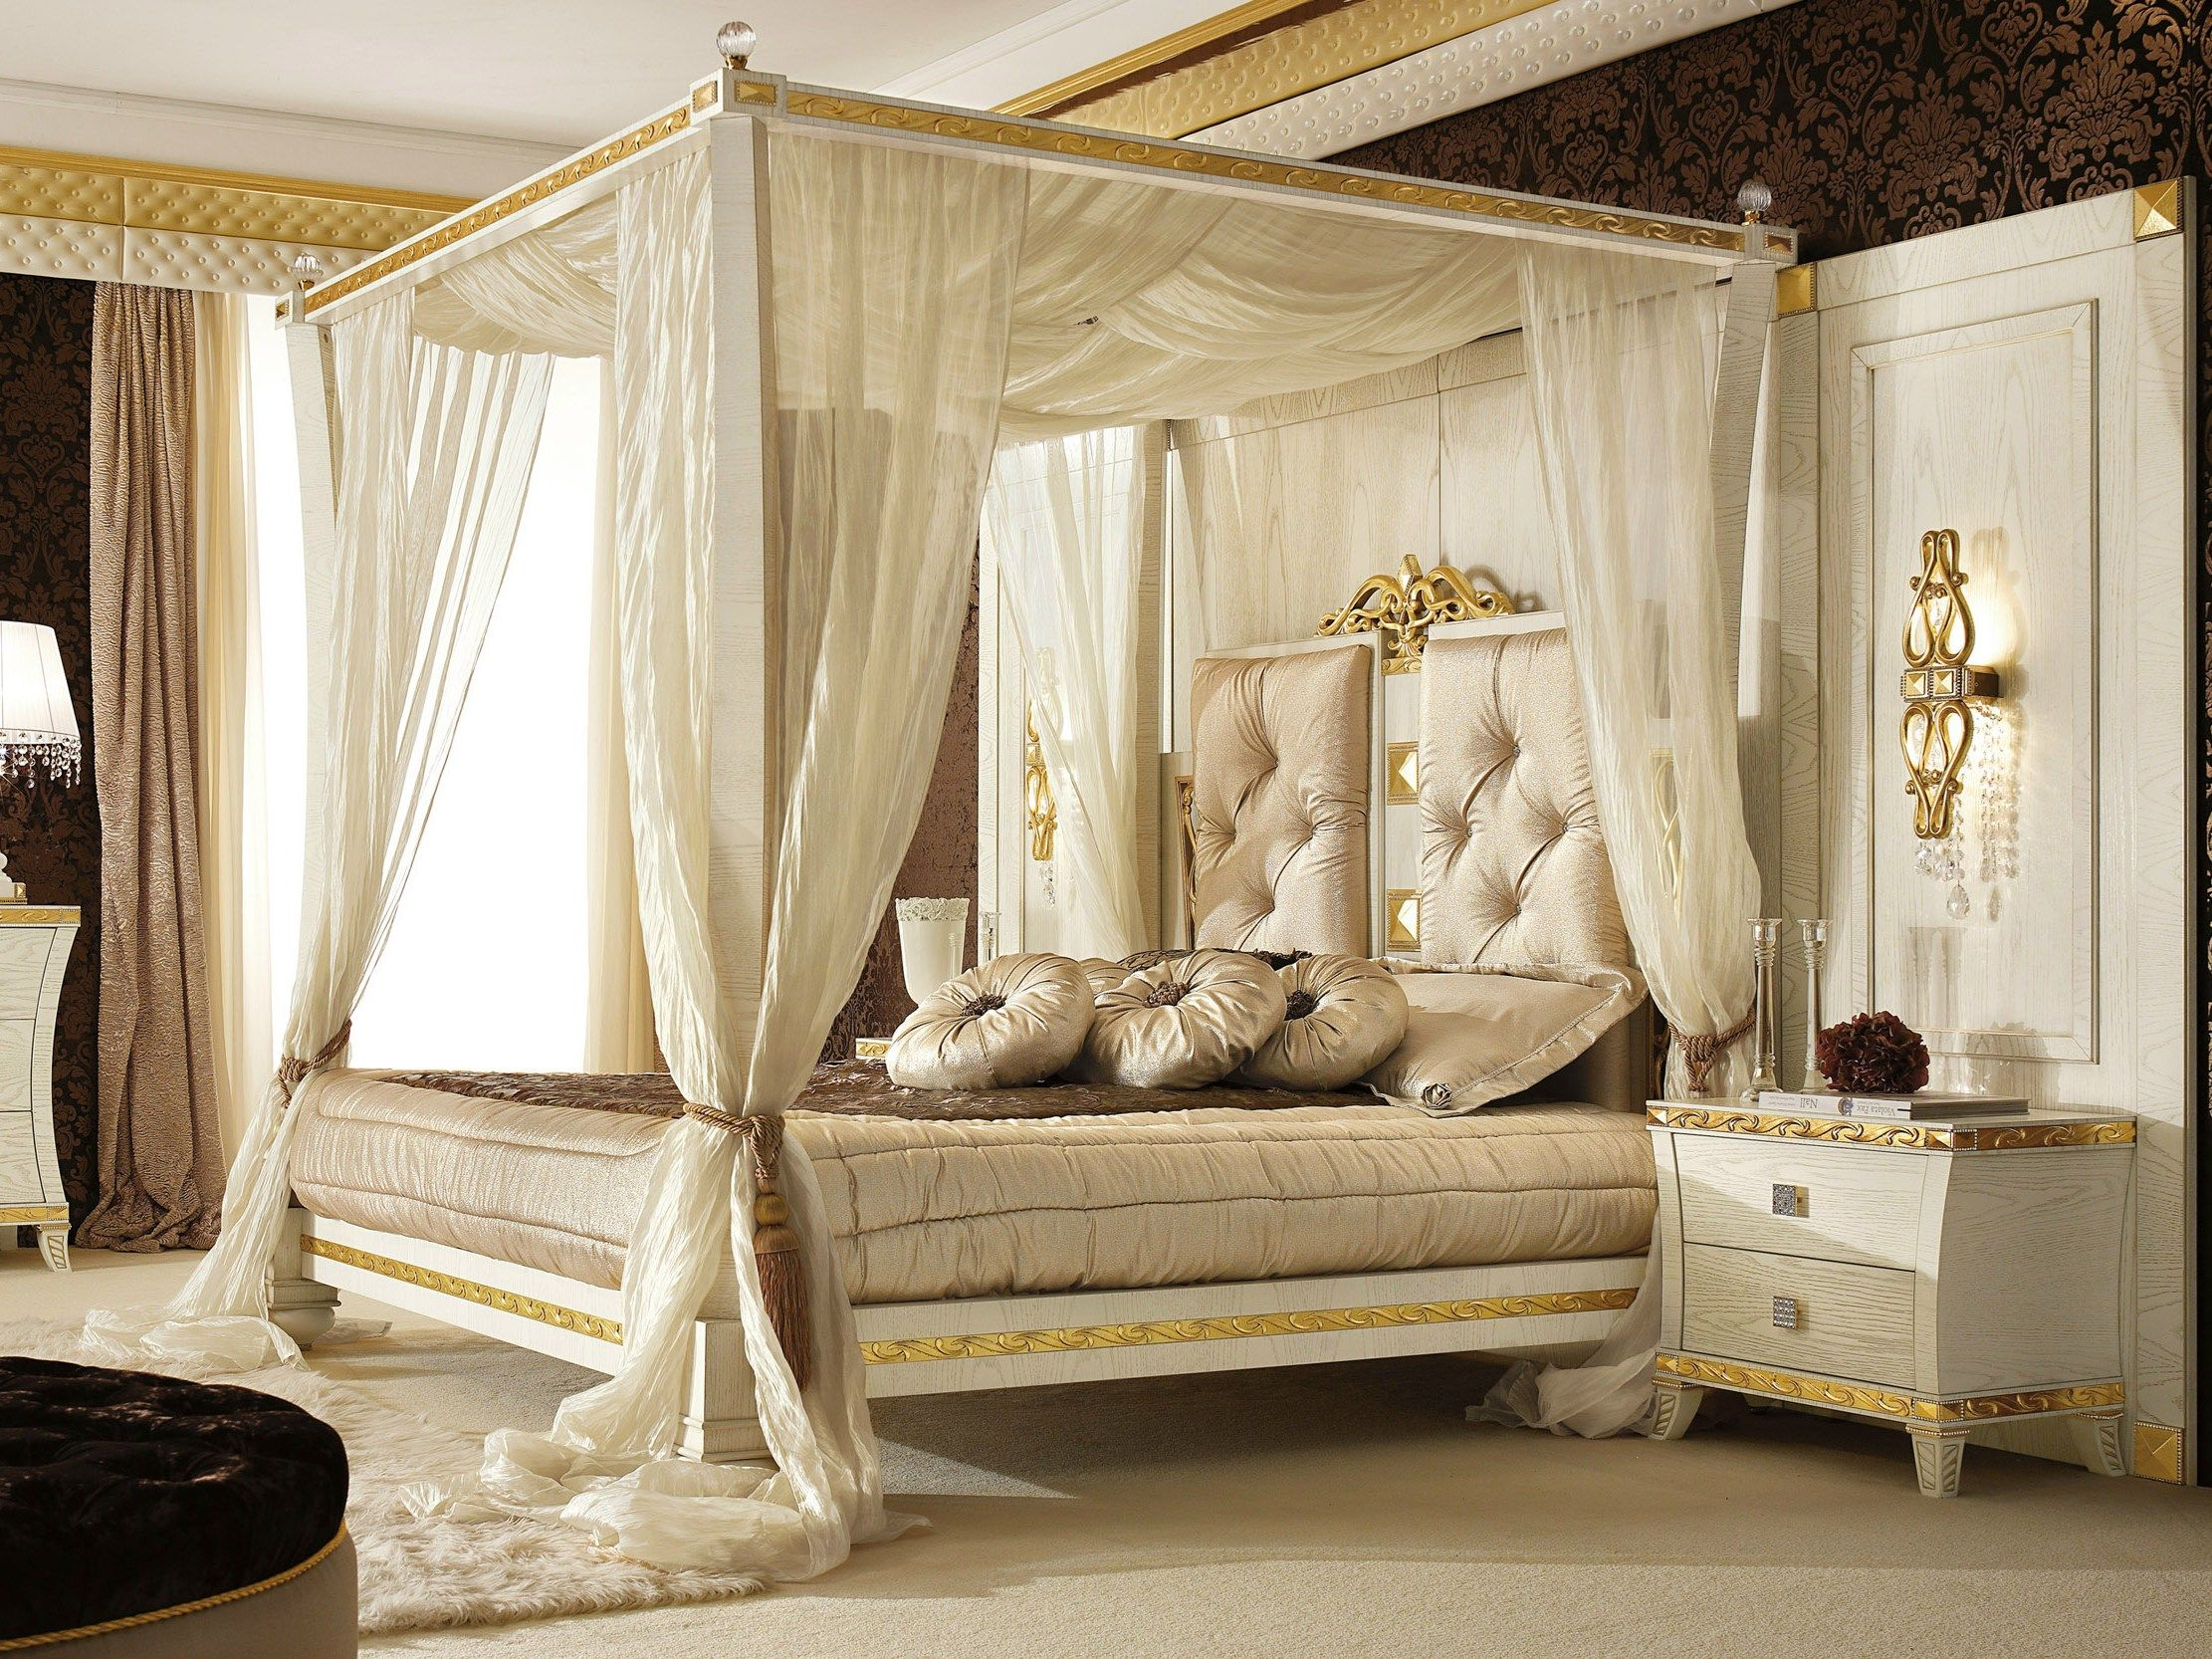 In this opportunity, we will share some information about bed canopy  design. Canopy on